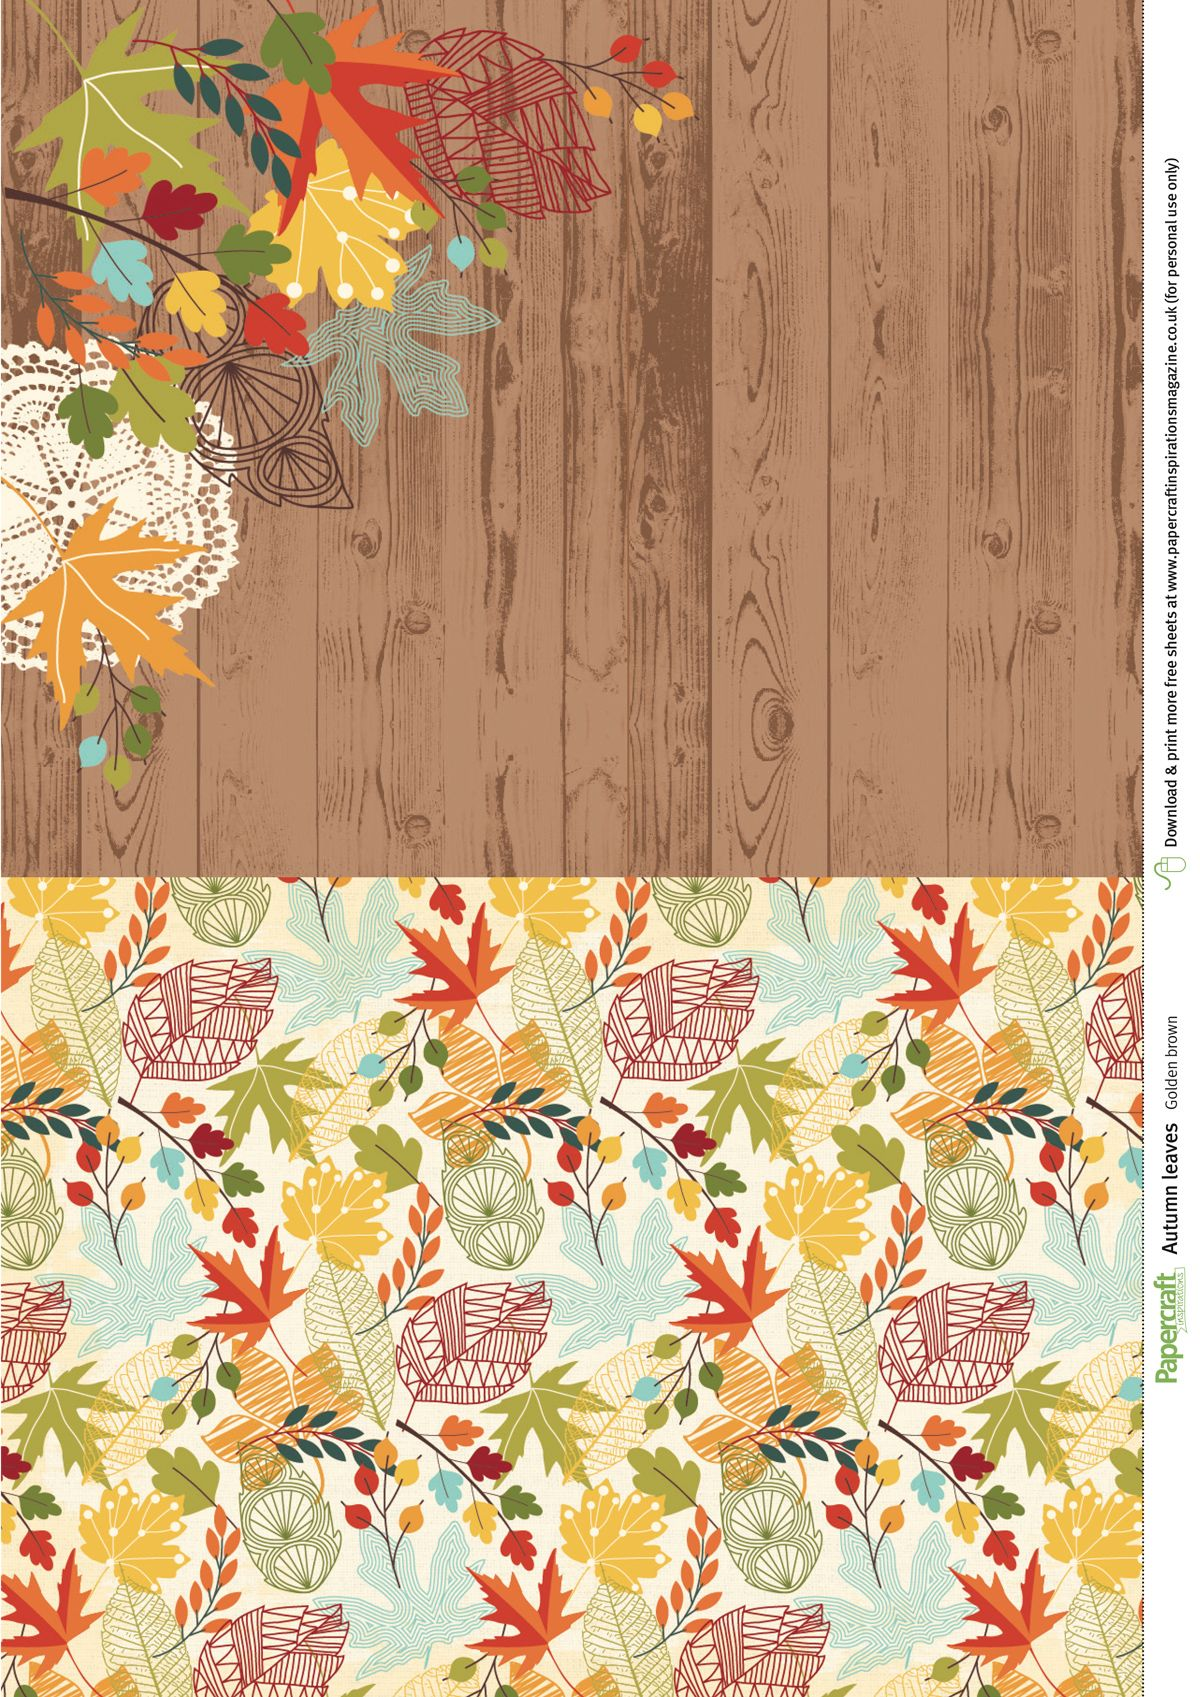 Free Autumnal Leaves Patterned Papers Free Paper Printables Digital Paper Free Free Scrapbook Paper